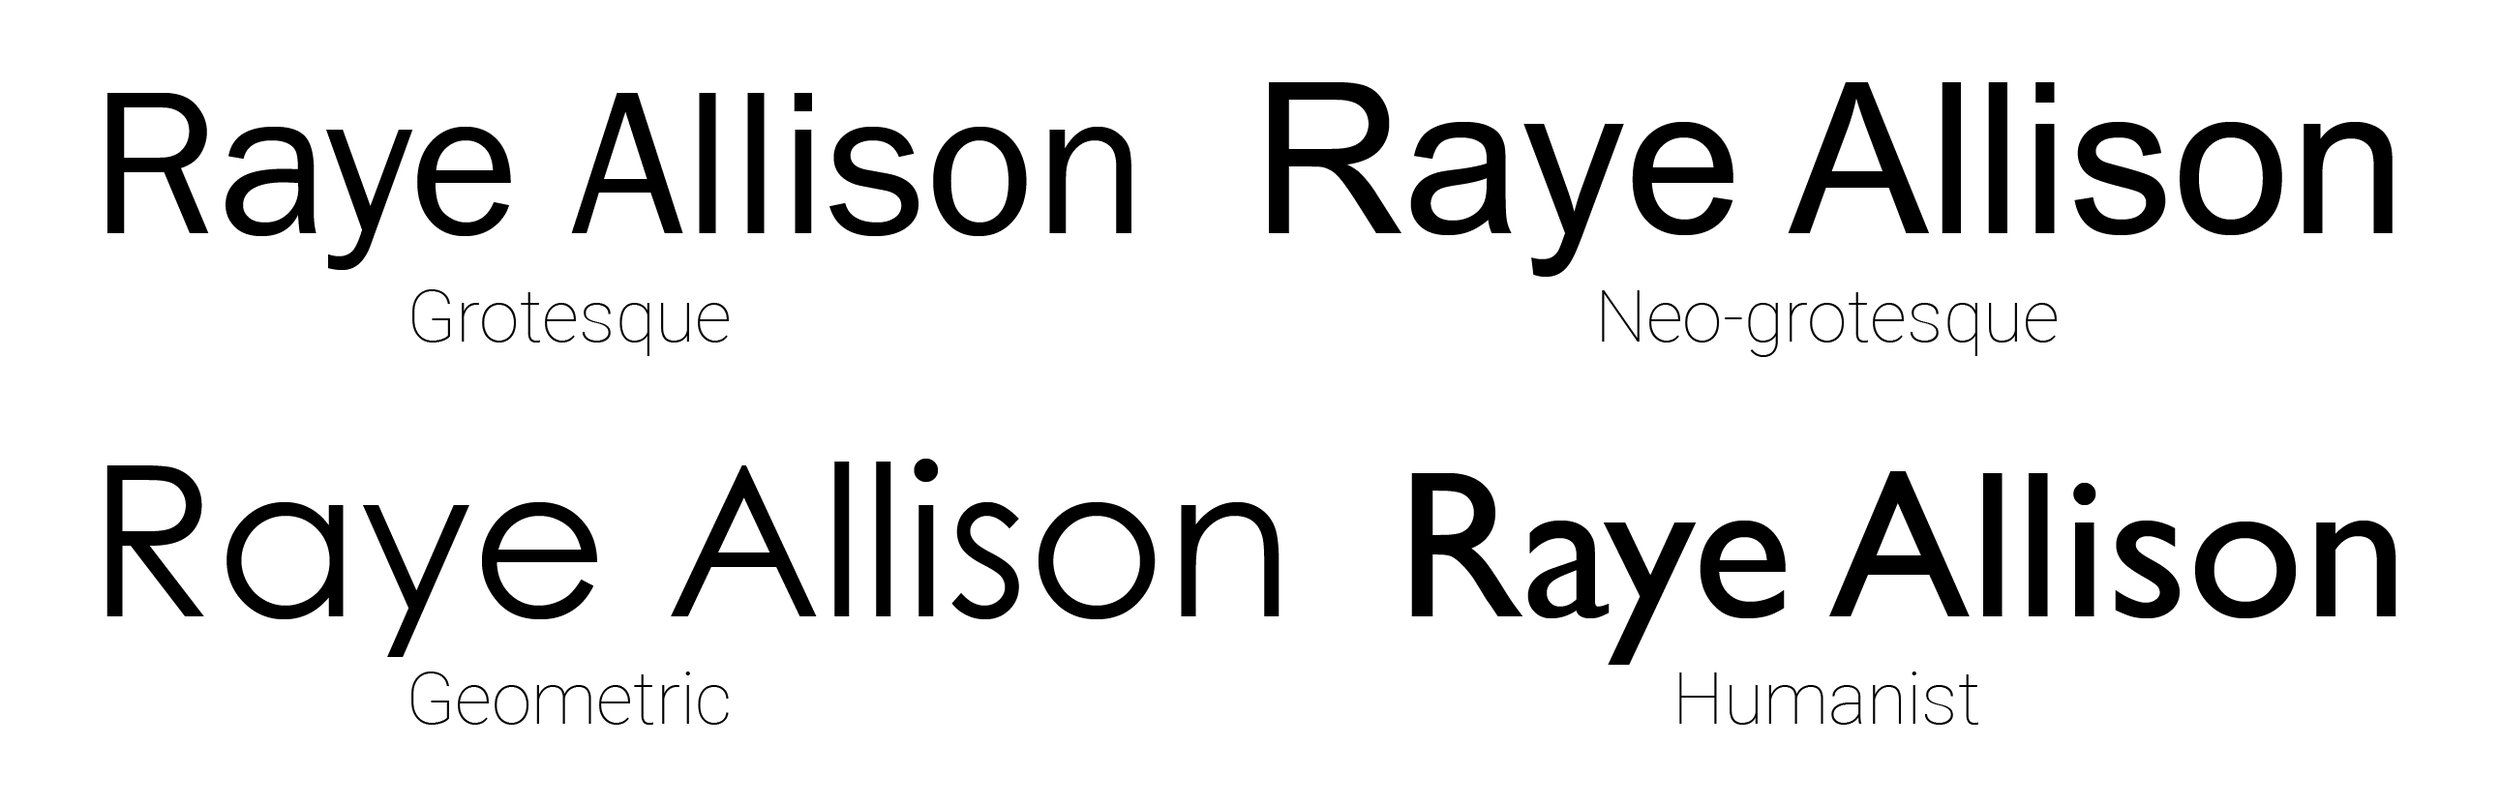 Sans serif typefaces are the typefaces without serifs.